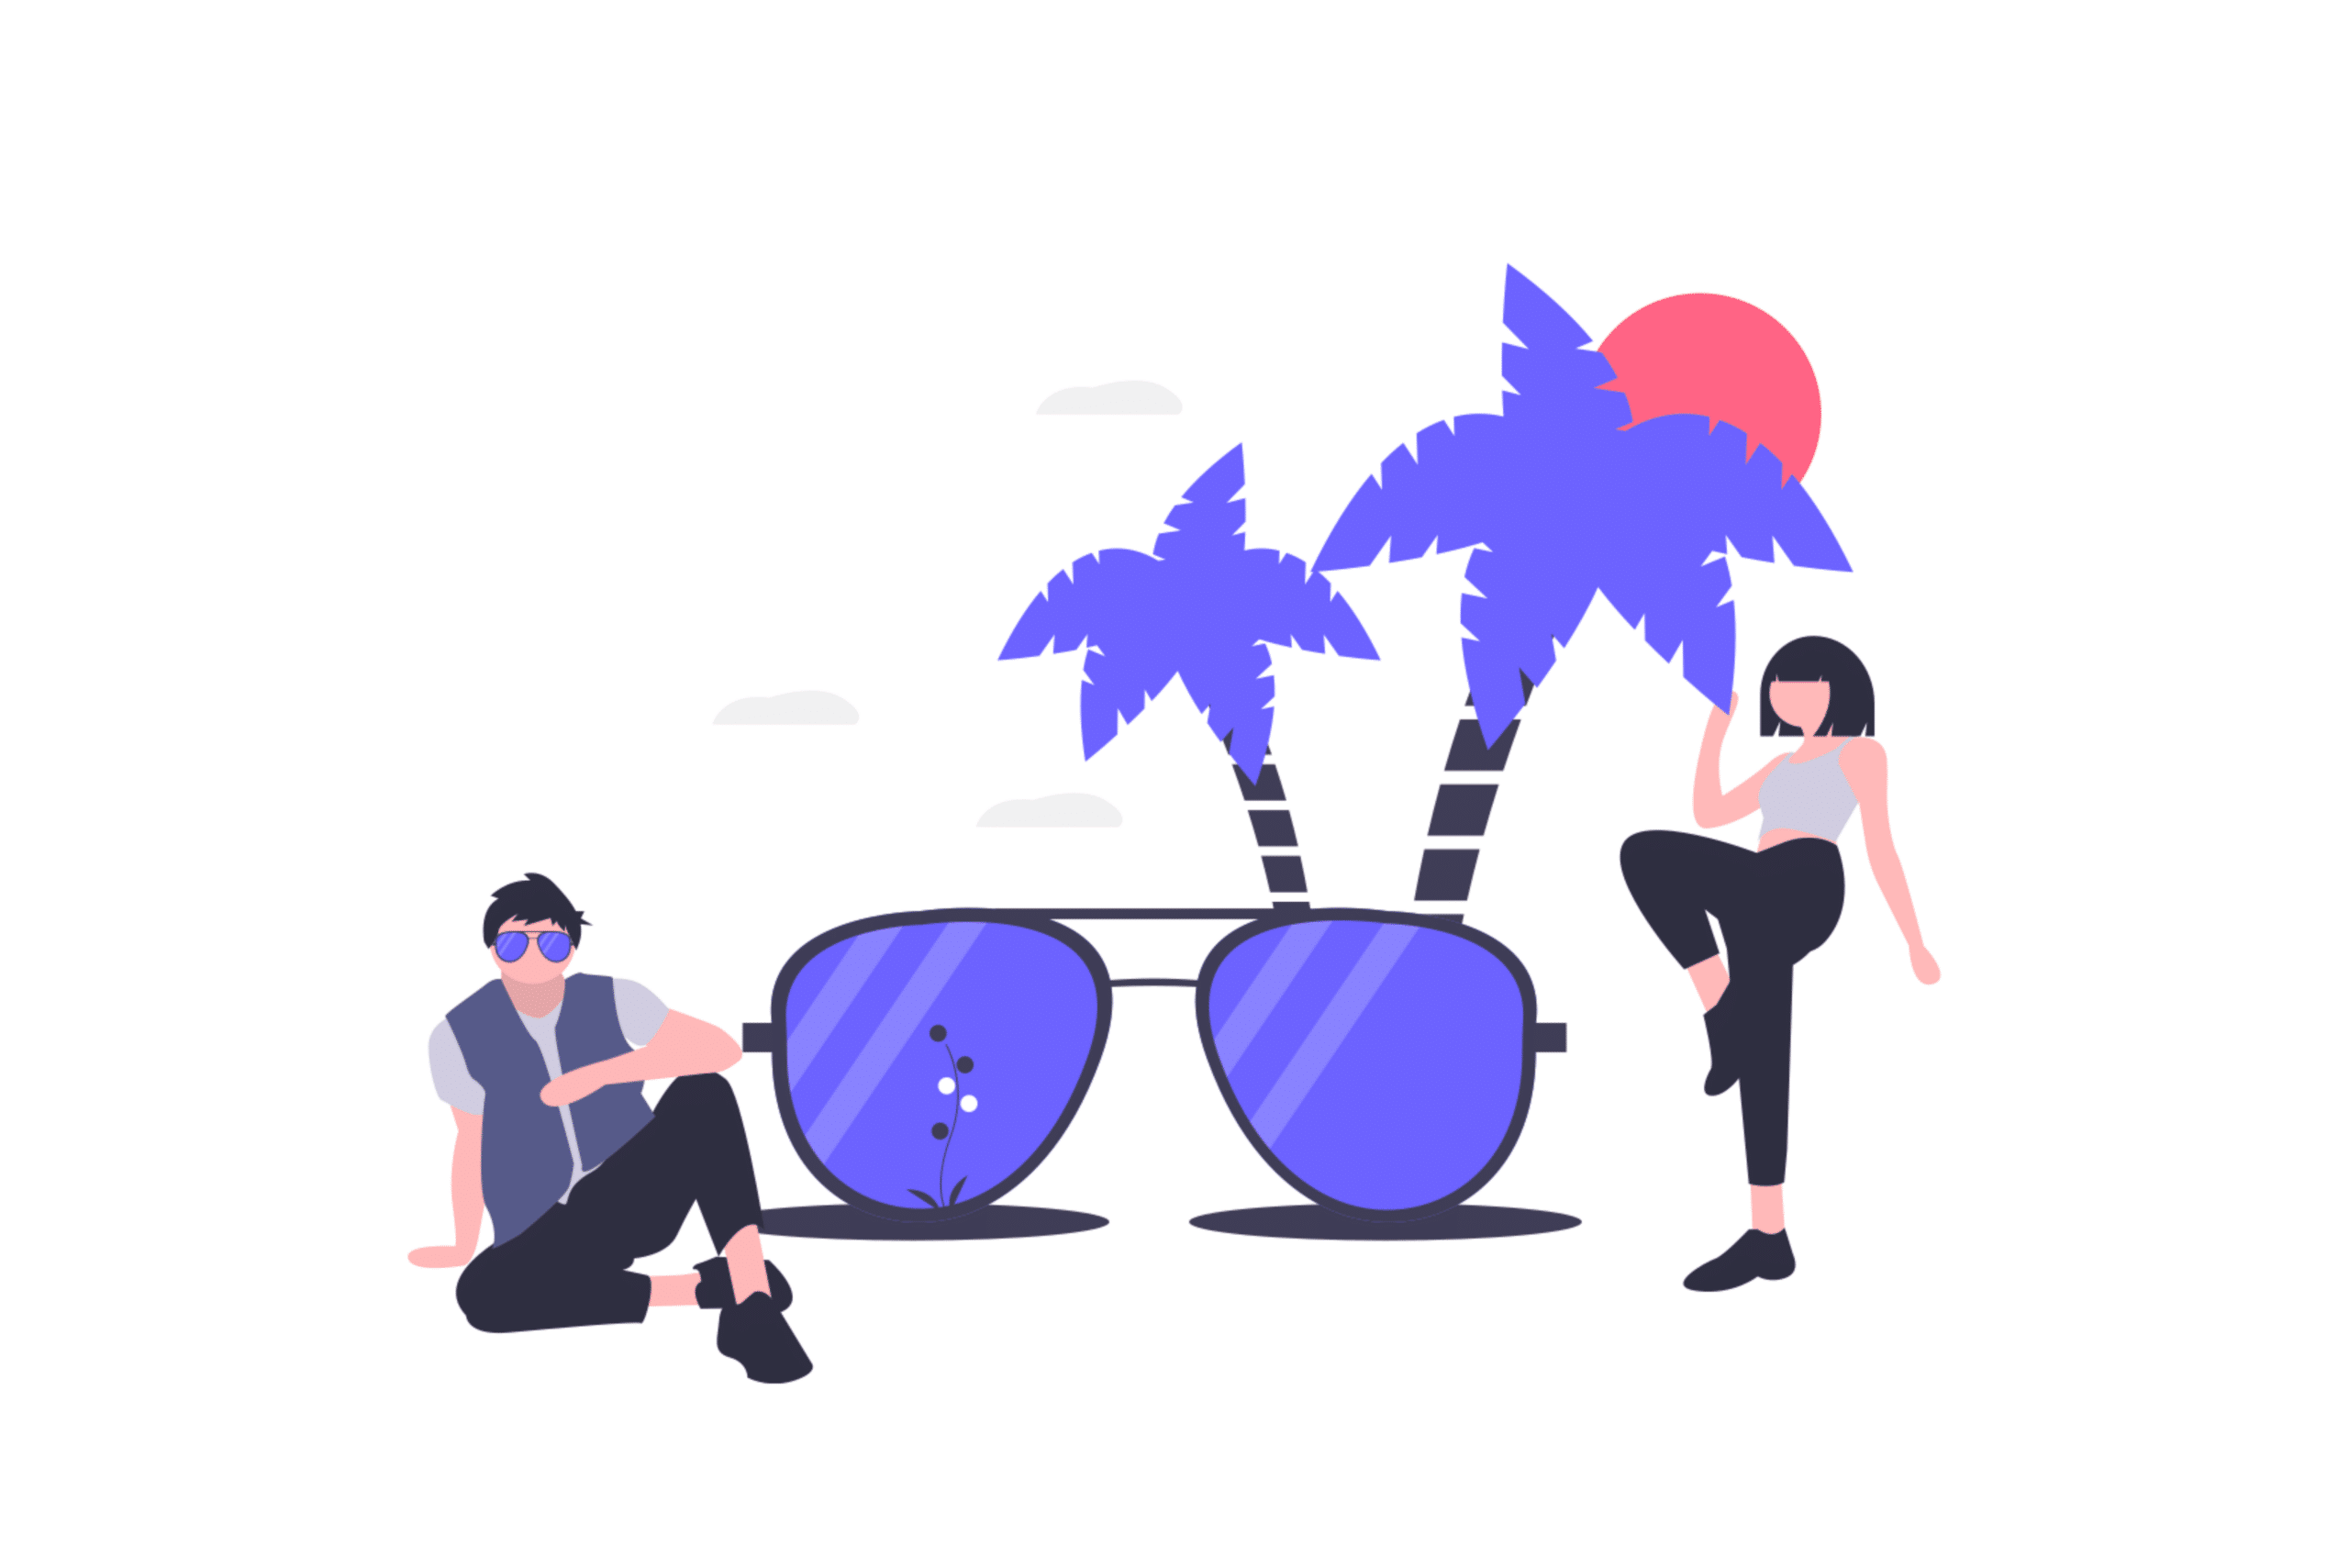 illustration about two people enjoying summer in DC